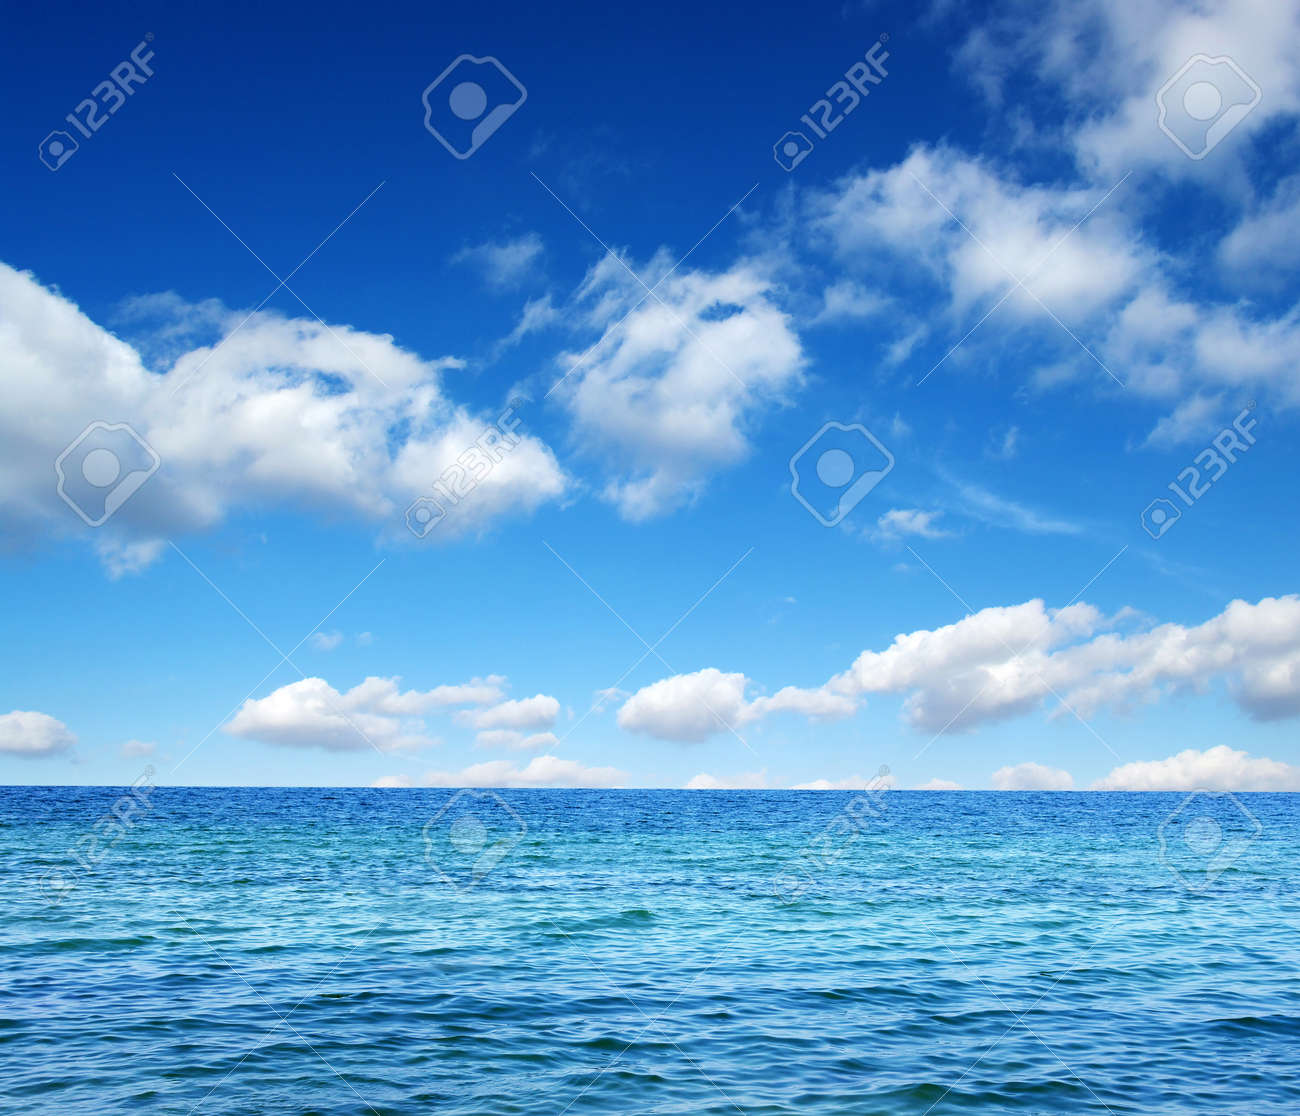 Blue sea water surface on sky Banque d'images - 44673236